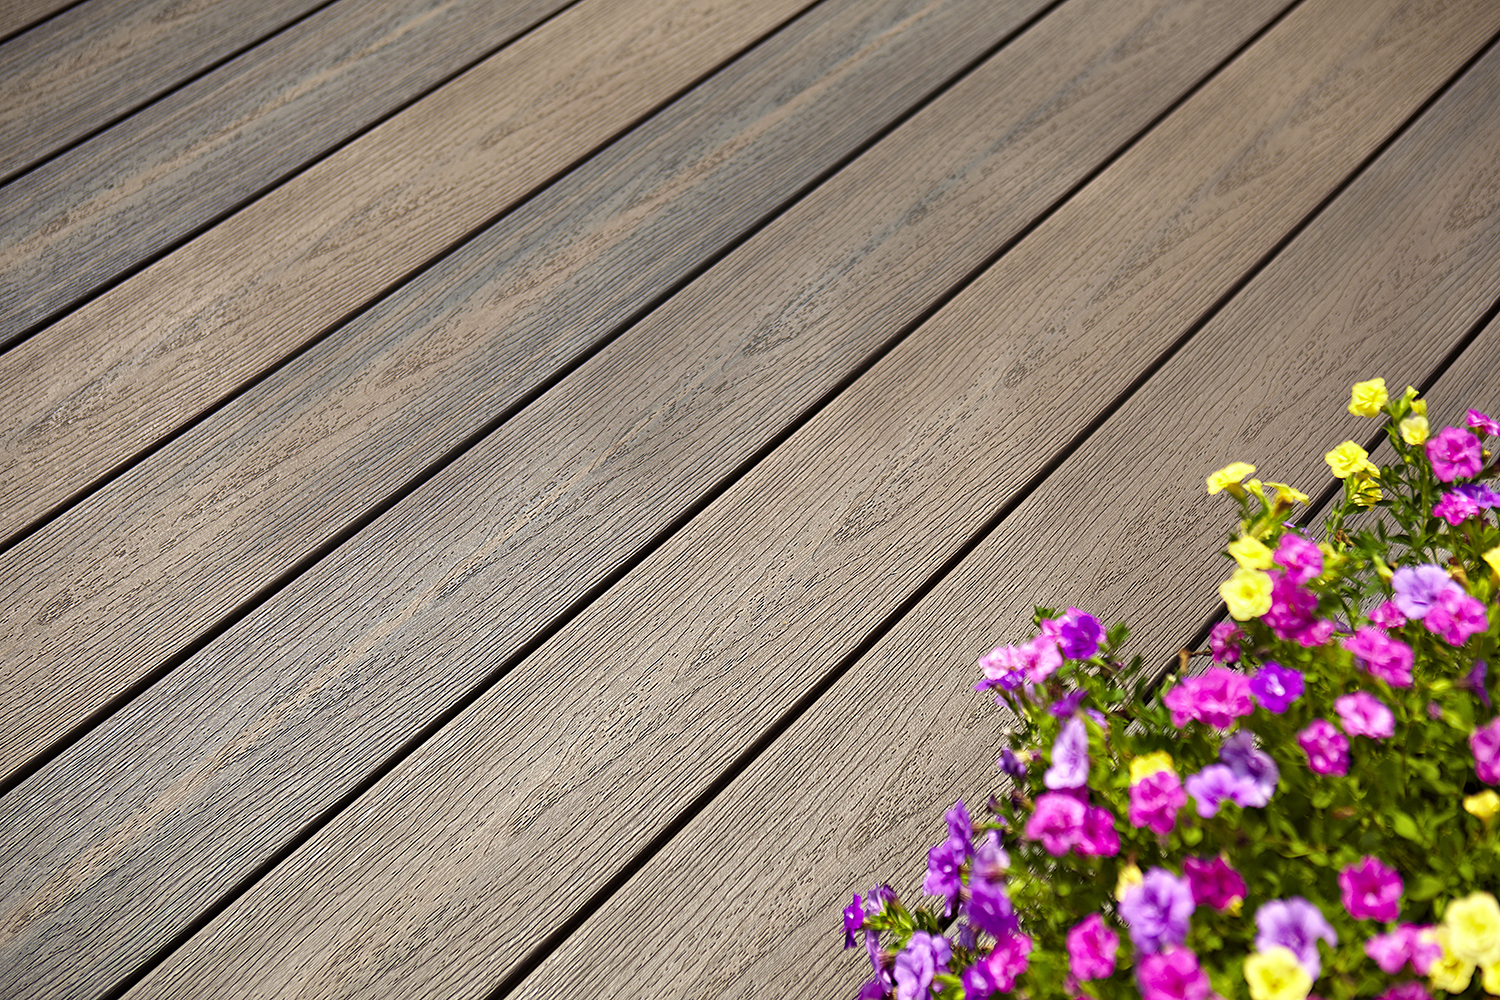 Fiberon Now Offers Two High Performance Decking Options For Wui Roved Areas